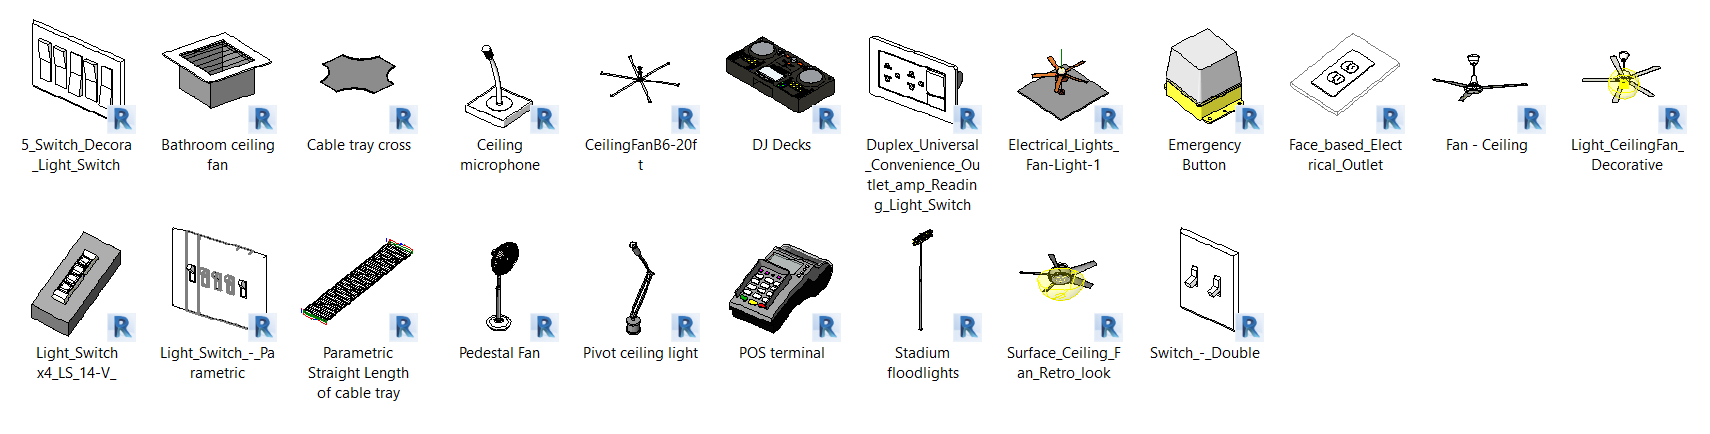 Electrical - Misc Gallery.PNG